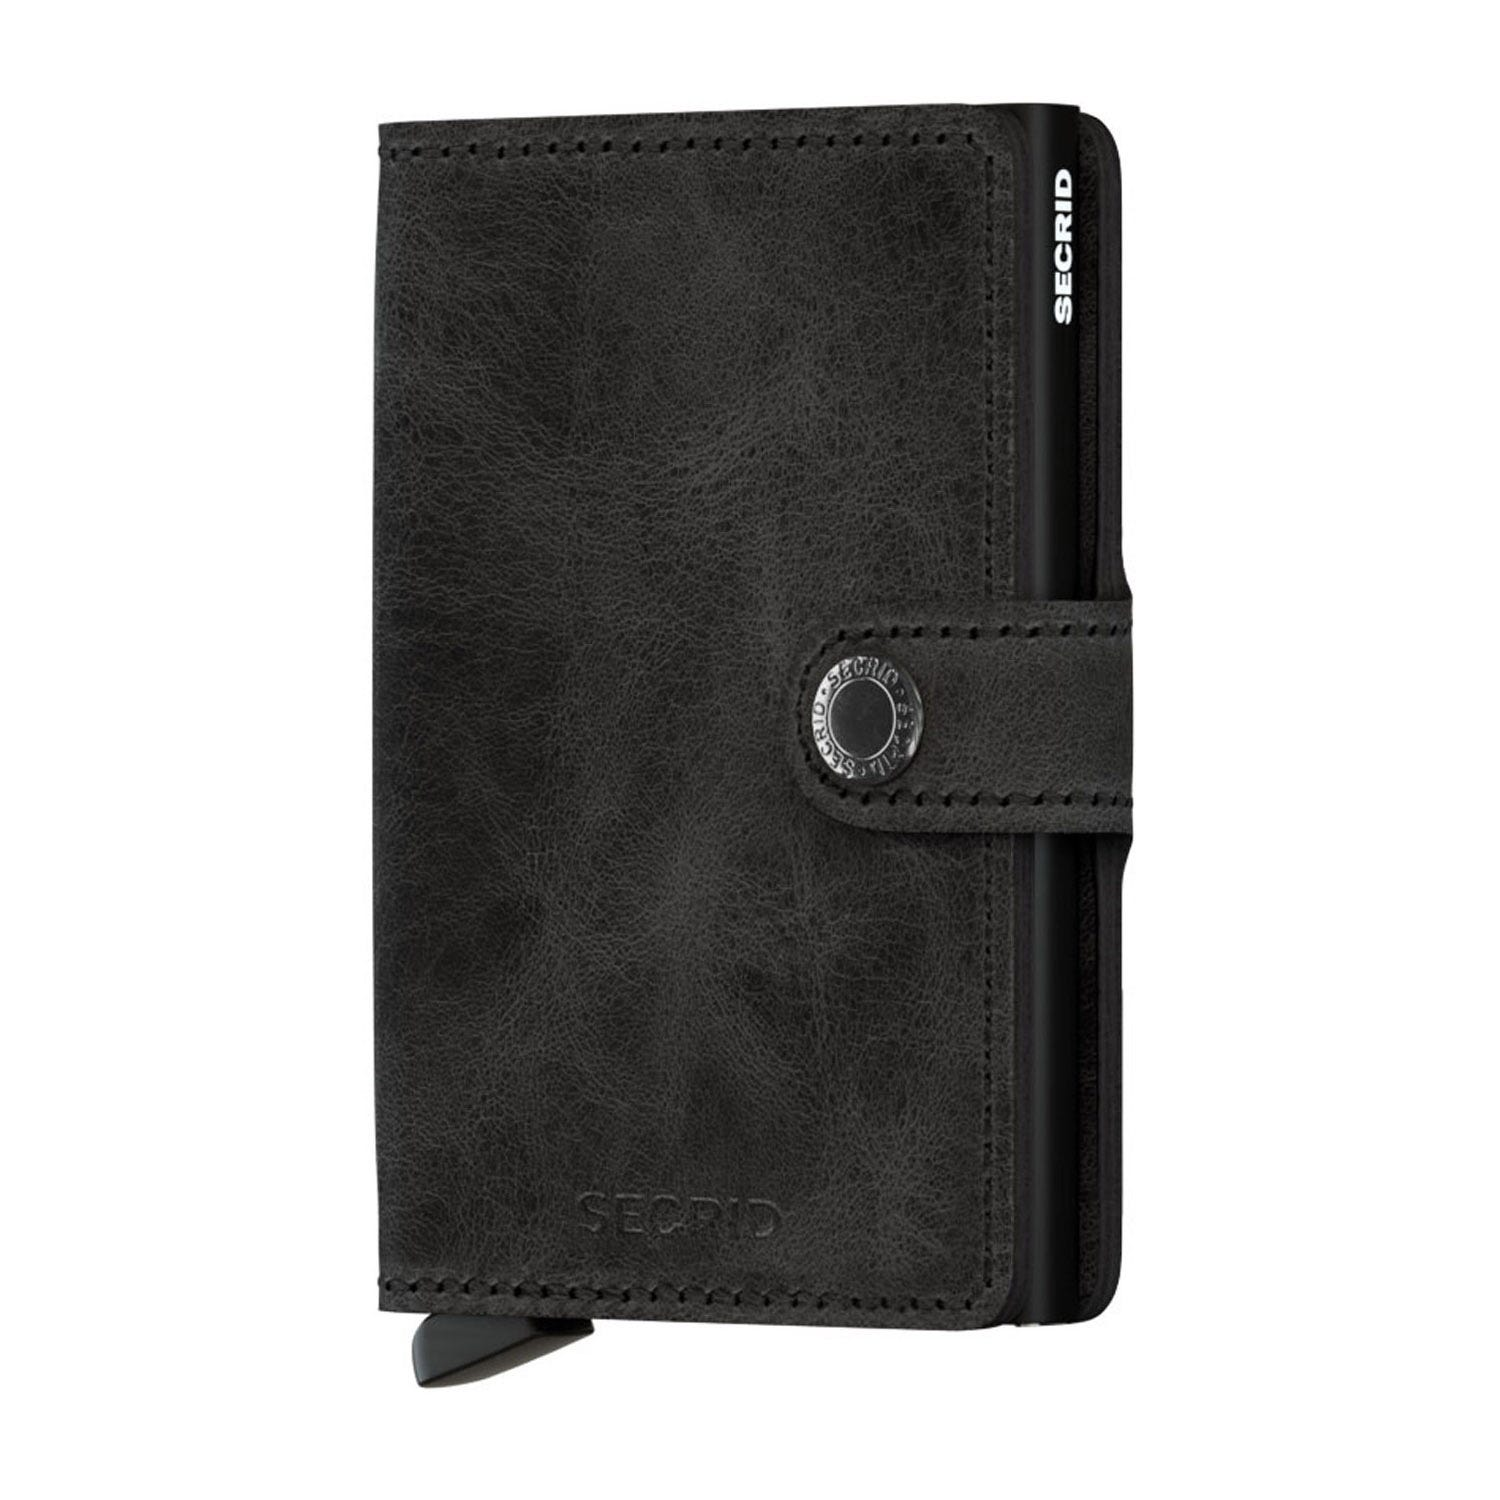 Secrid Wallet Vintage Black Leather Miniwallet